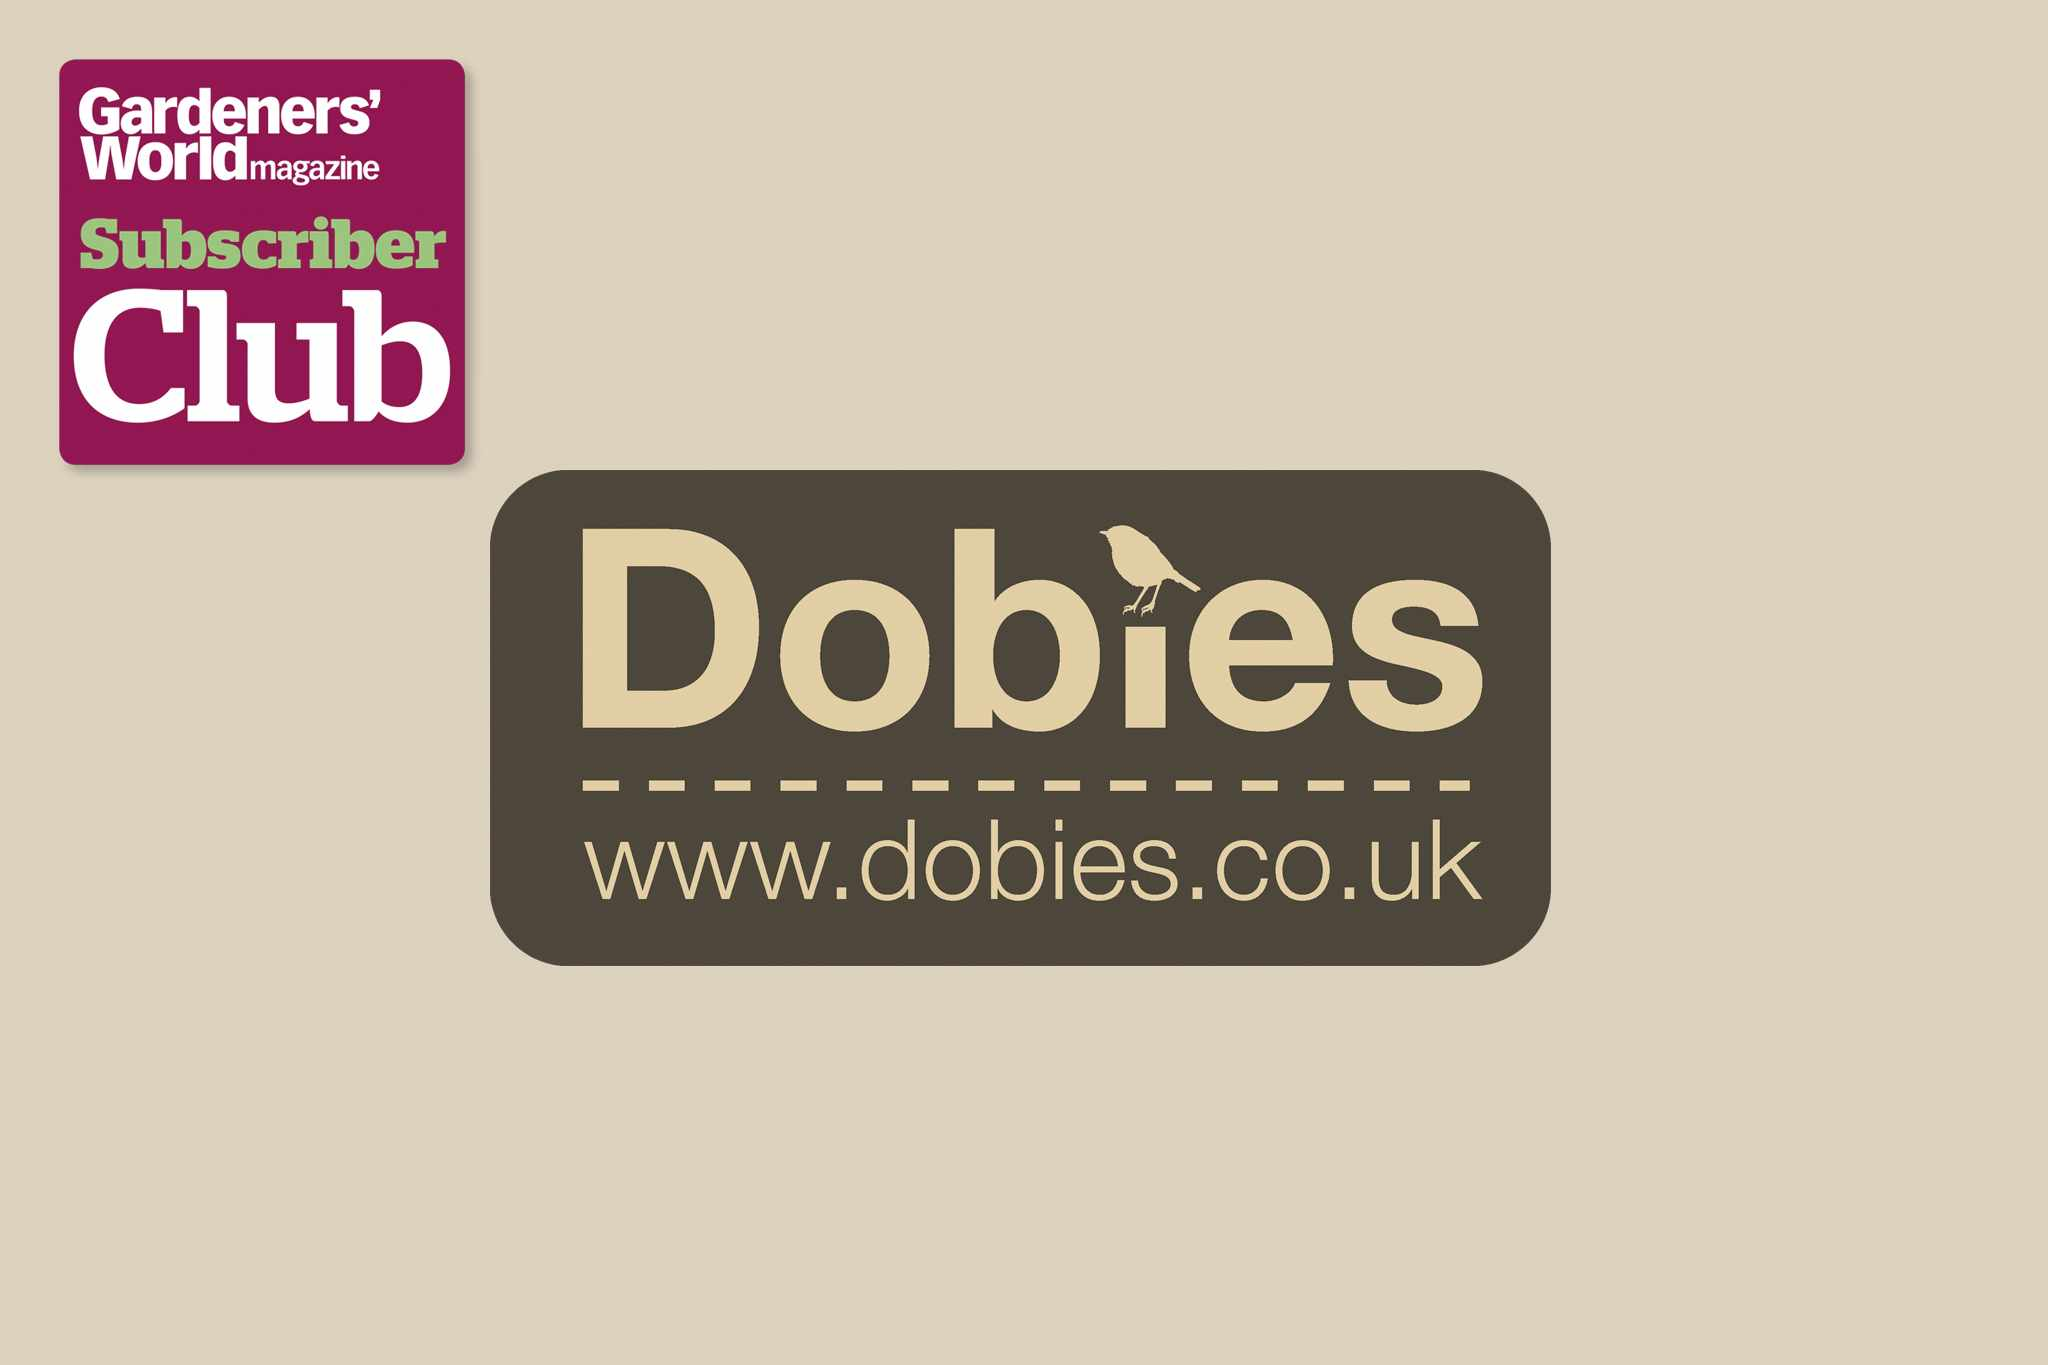 Dobies BBC Gardeners' World Magazine Subscriber Club discount